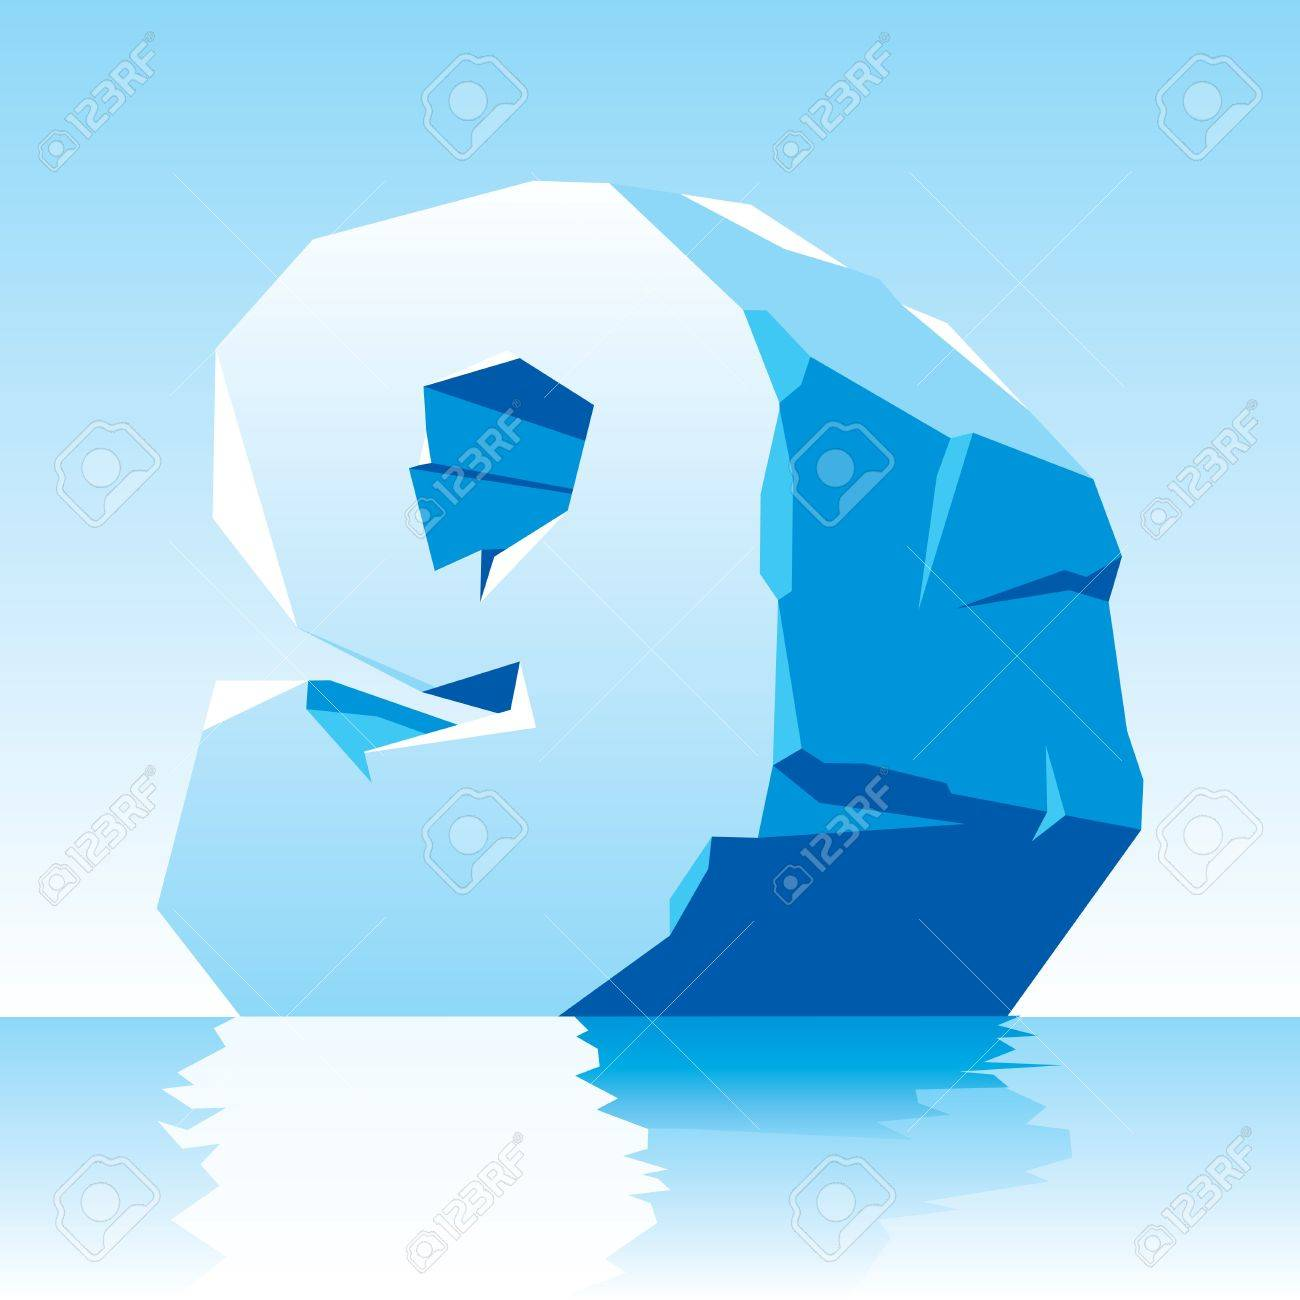 vector image of ice number 9 Stock Vector - 16589526